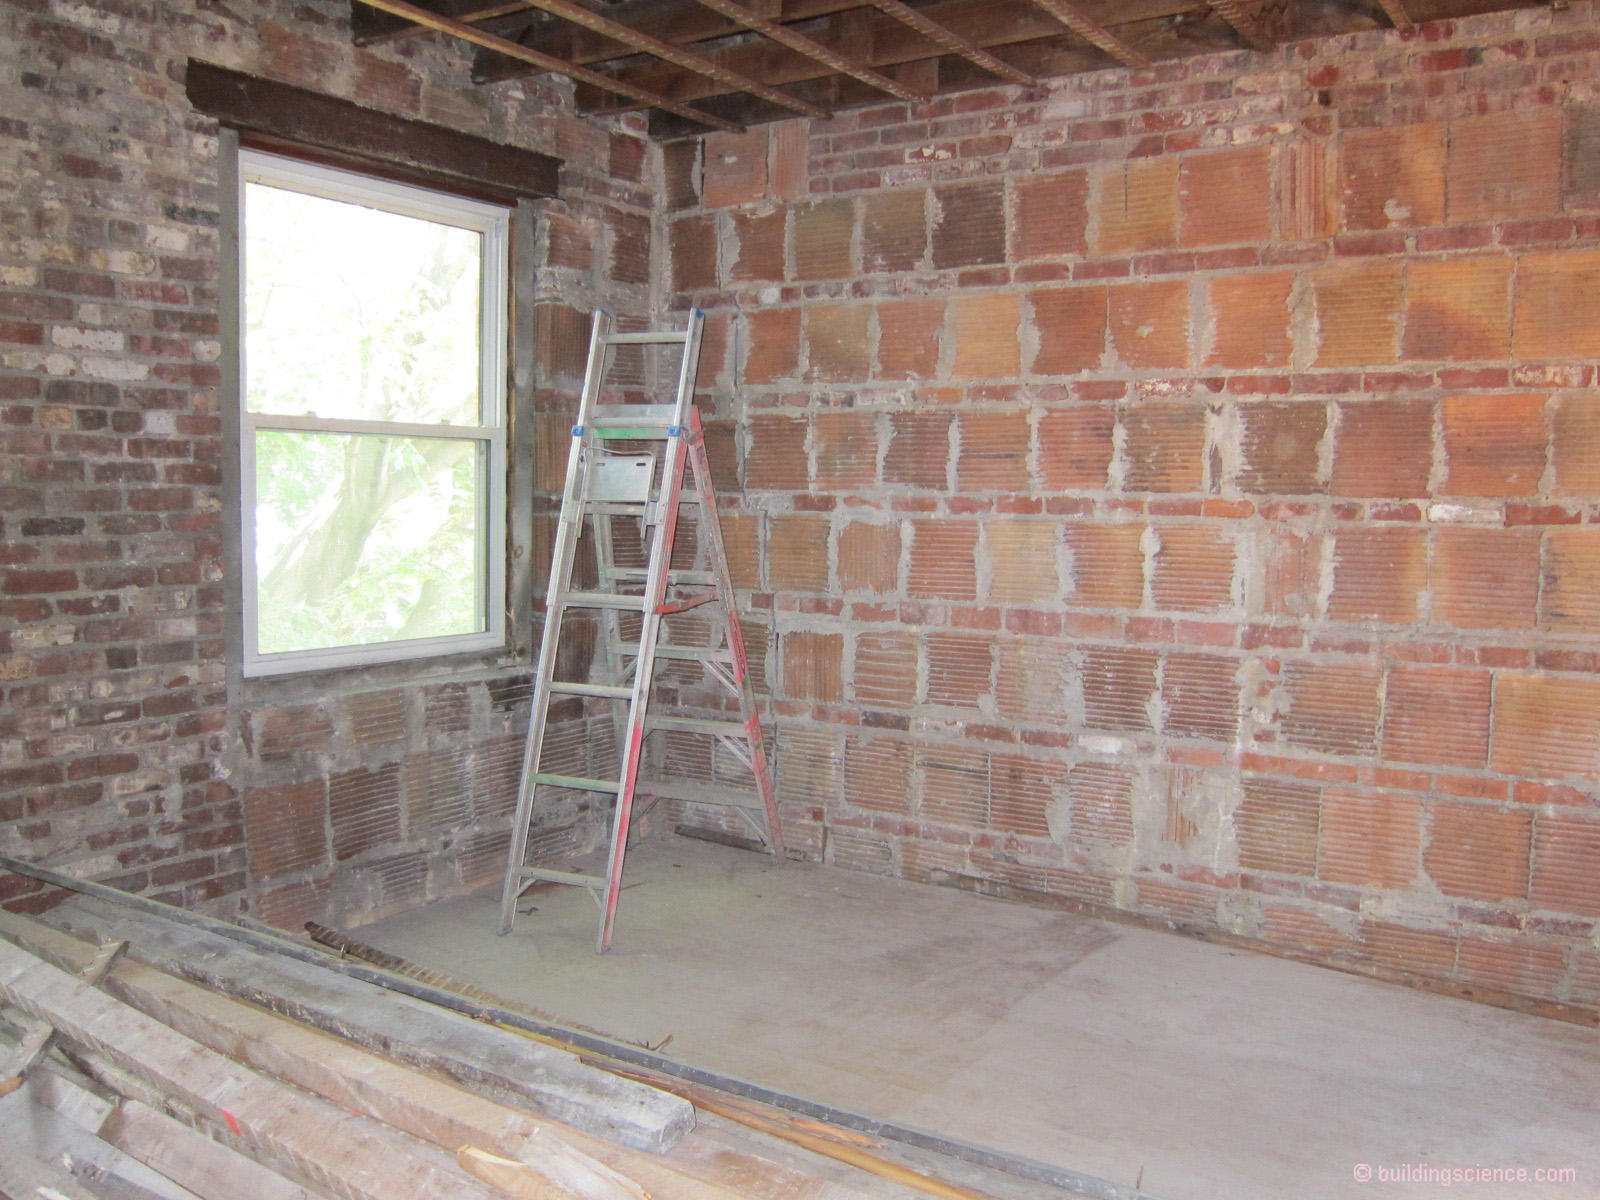 This is not our house, but this is what ours looks like, without the brick wythe in between each tile course. Note the ribbing for plaster adhesion